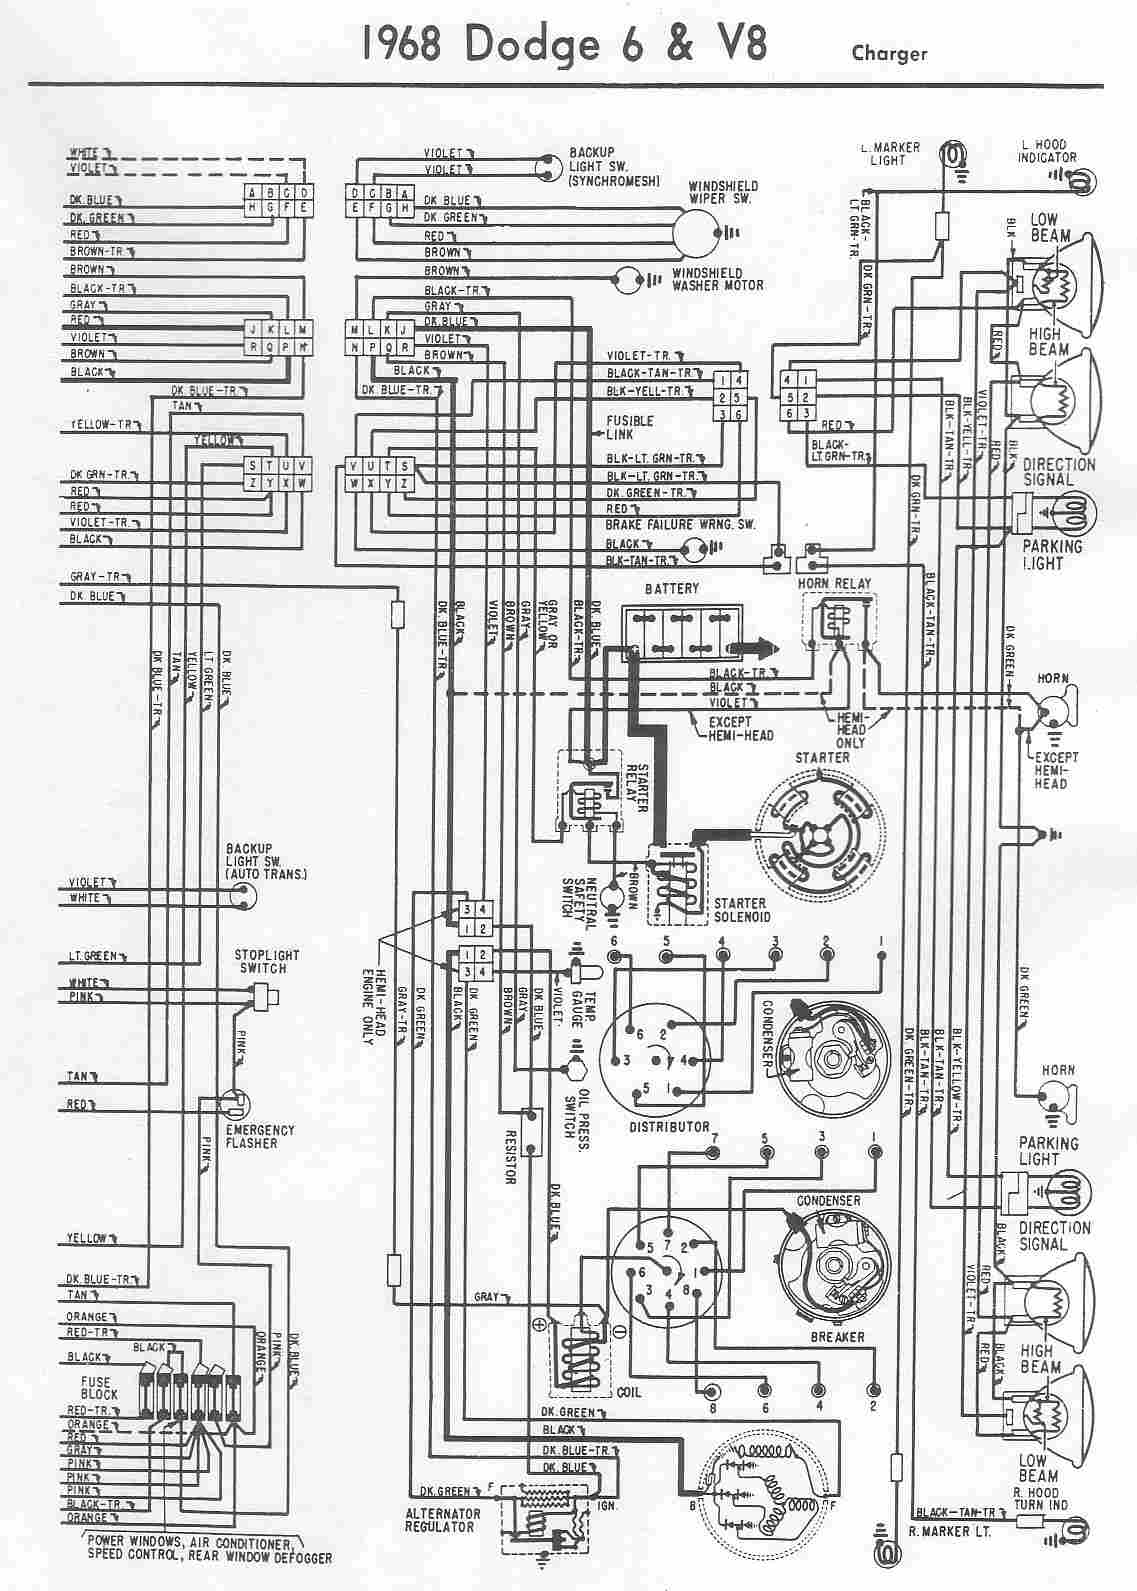 charger electrical wiring diagram of 1968 dodge 6 and v8 t  [ 1137 x 1591 Pixel ]